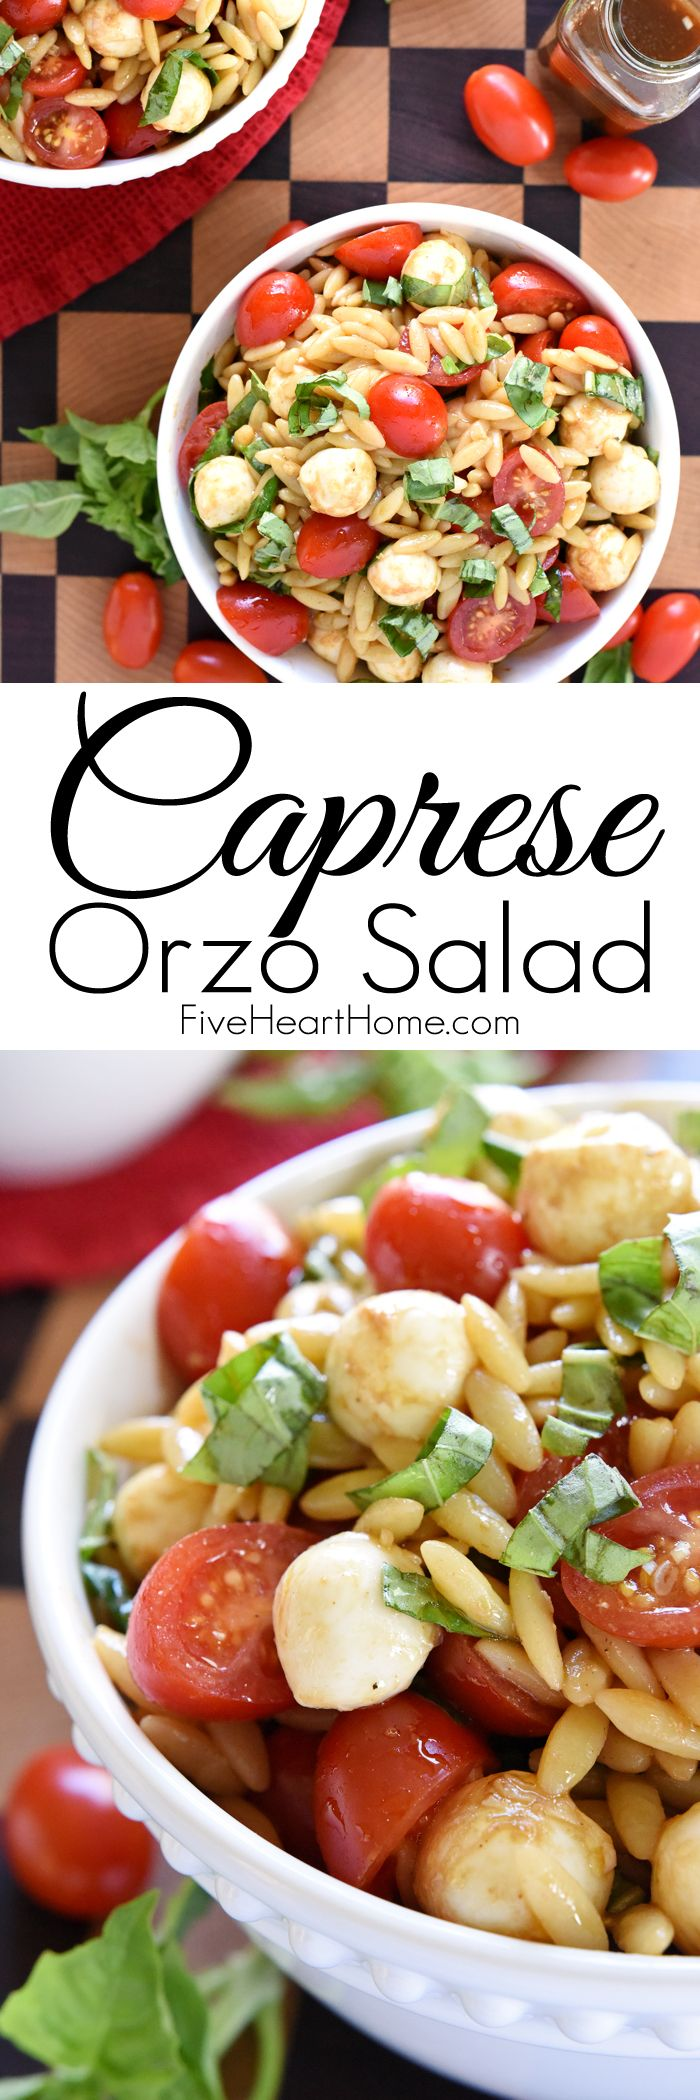 I can eat and still lose weight Caprese Orzo Salad ~ a vibrant summer pasta salad featuring juicy tomatoes, creamy balls of mozzarella, and ribbons of fresh basil, all topped off with a flavorful balsamic vinaigrette! | FiveHeartHome.com